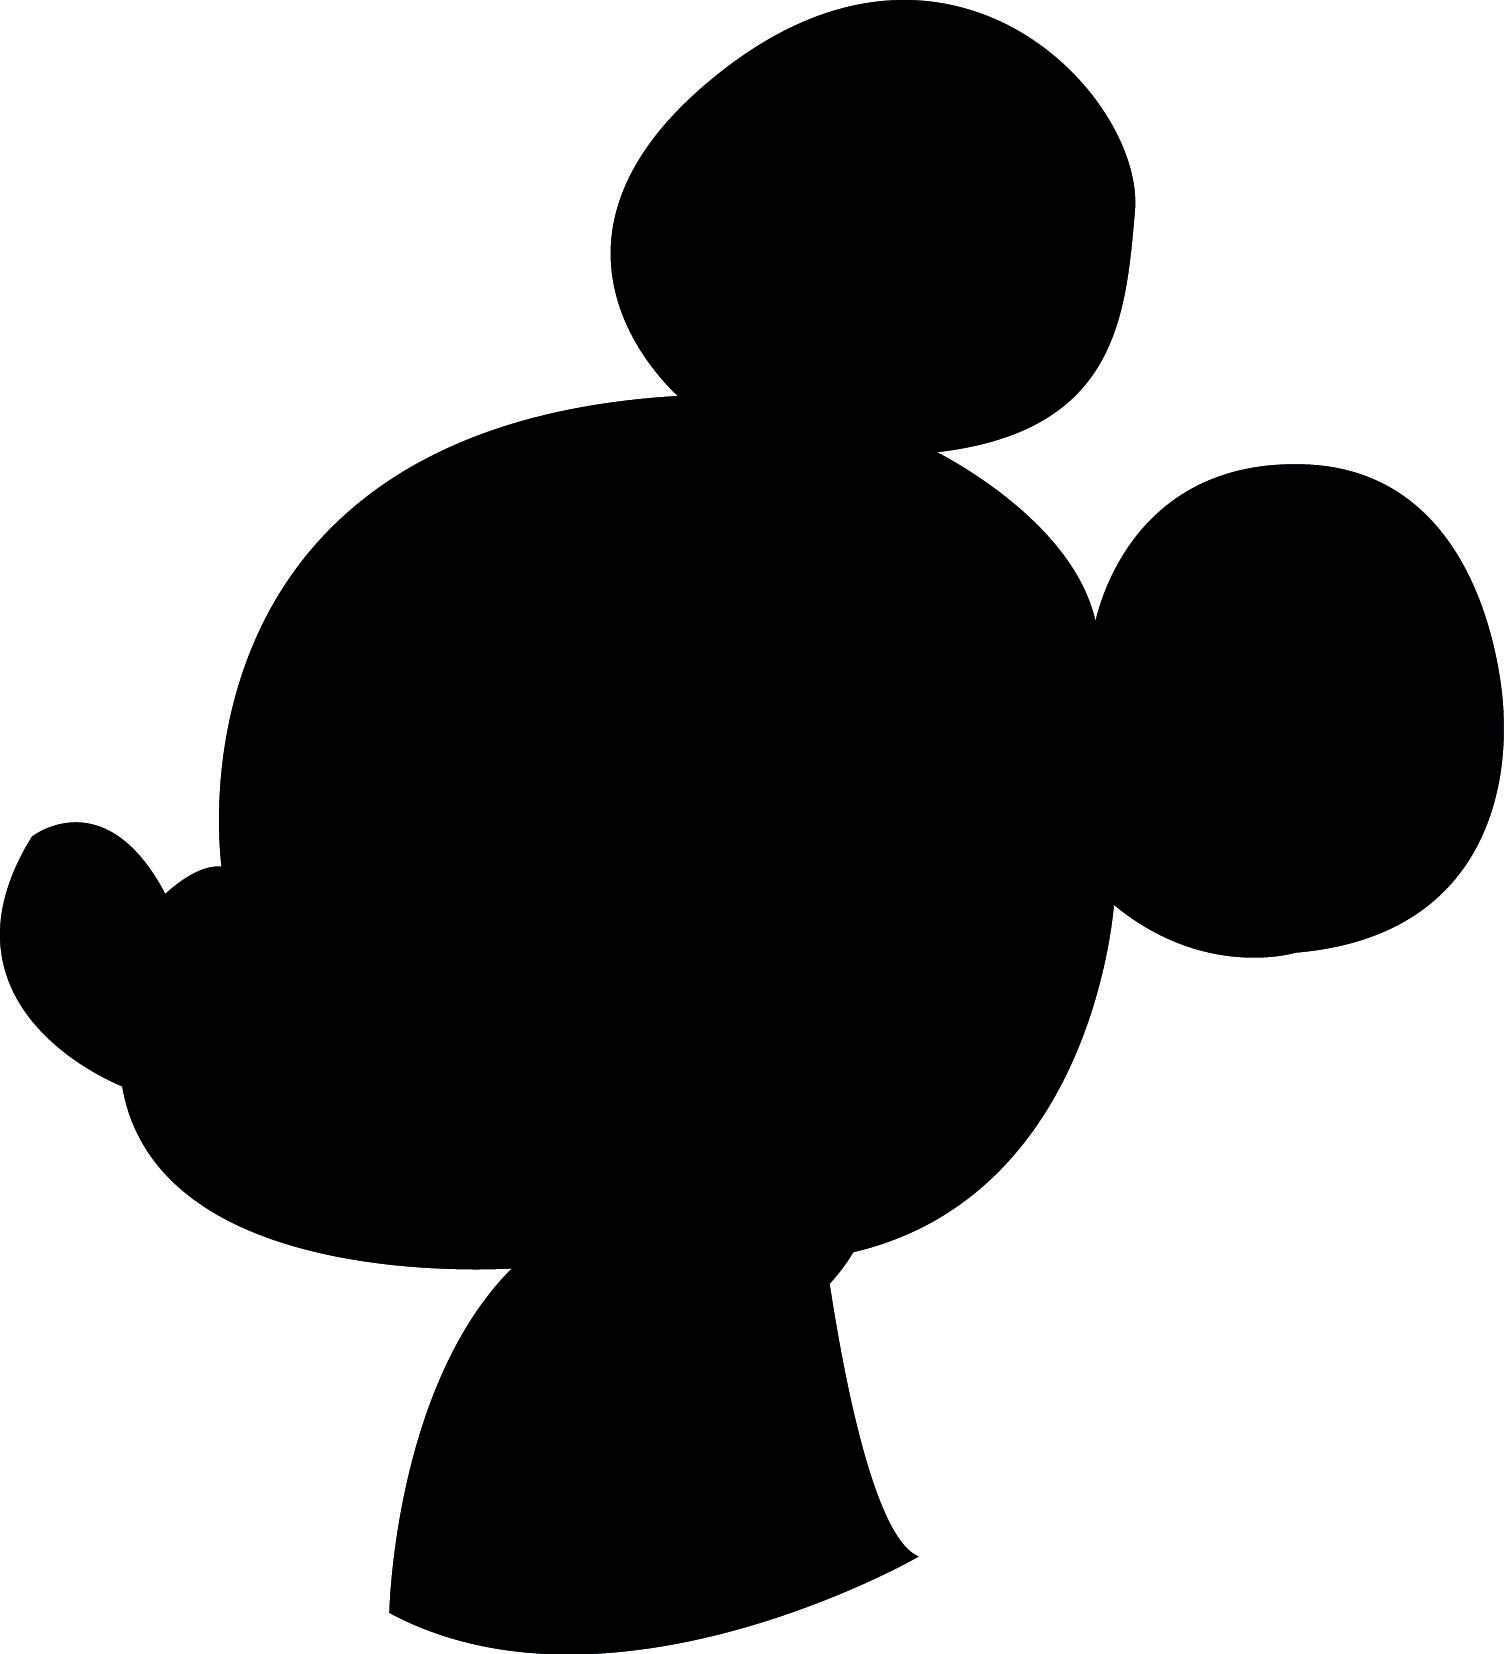 Downloadable Disney Mickey, Donald and Goofy Silhouettes